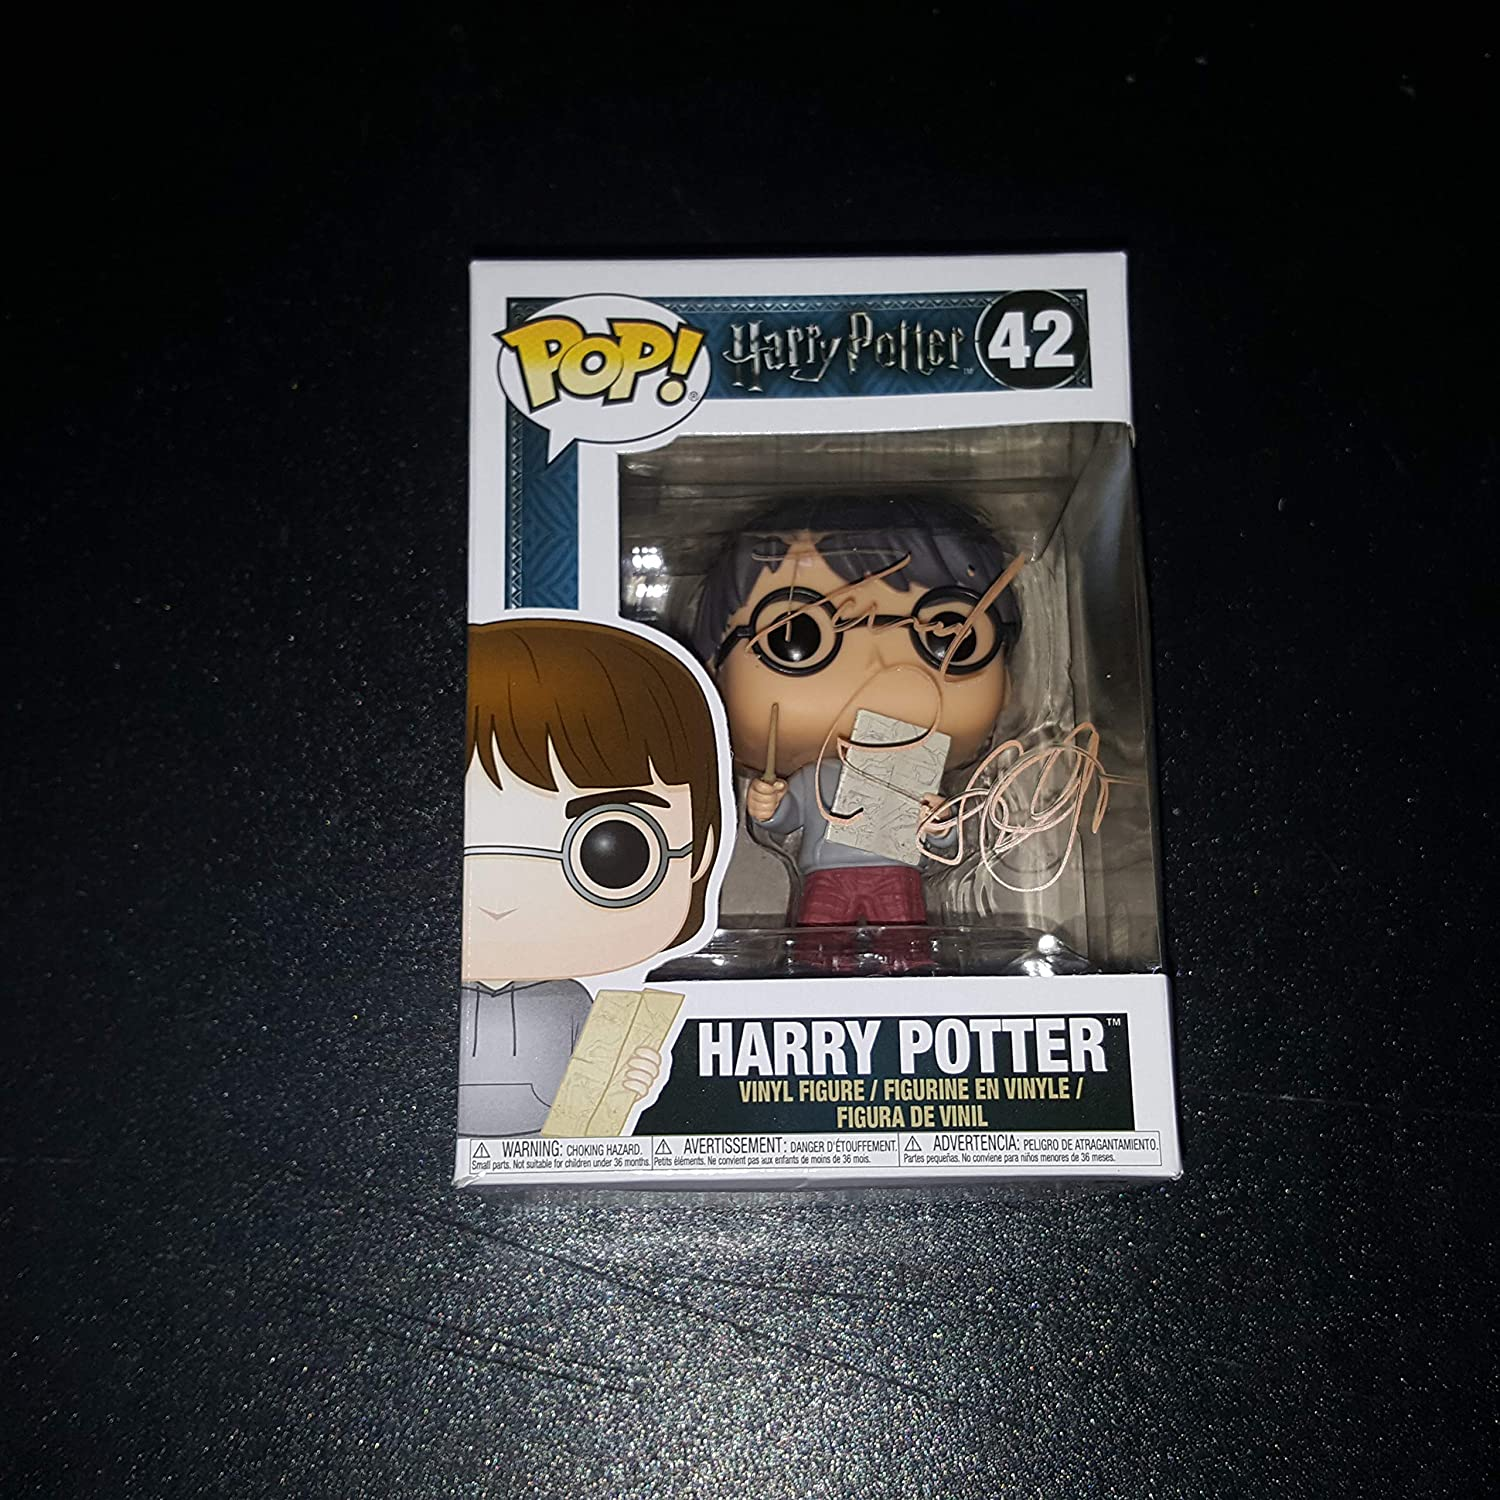 Daniel Radcliffe - Autographed Signed HARRY POTTER FUNKO POP 42 Vinyl Figure COA